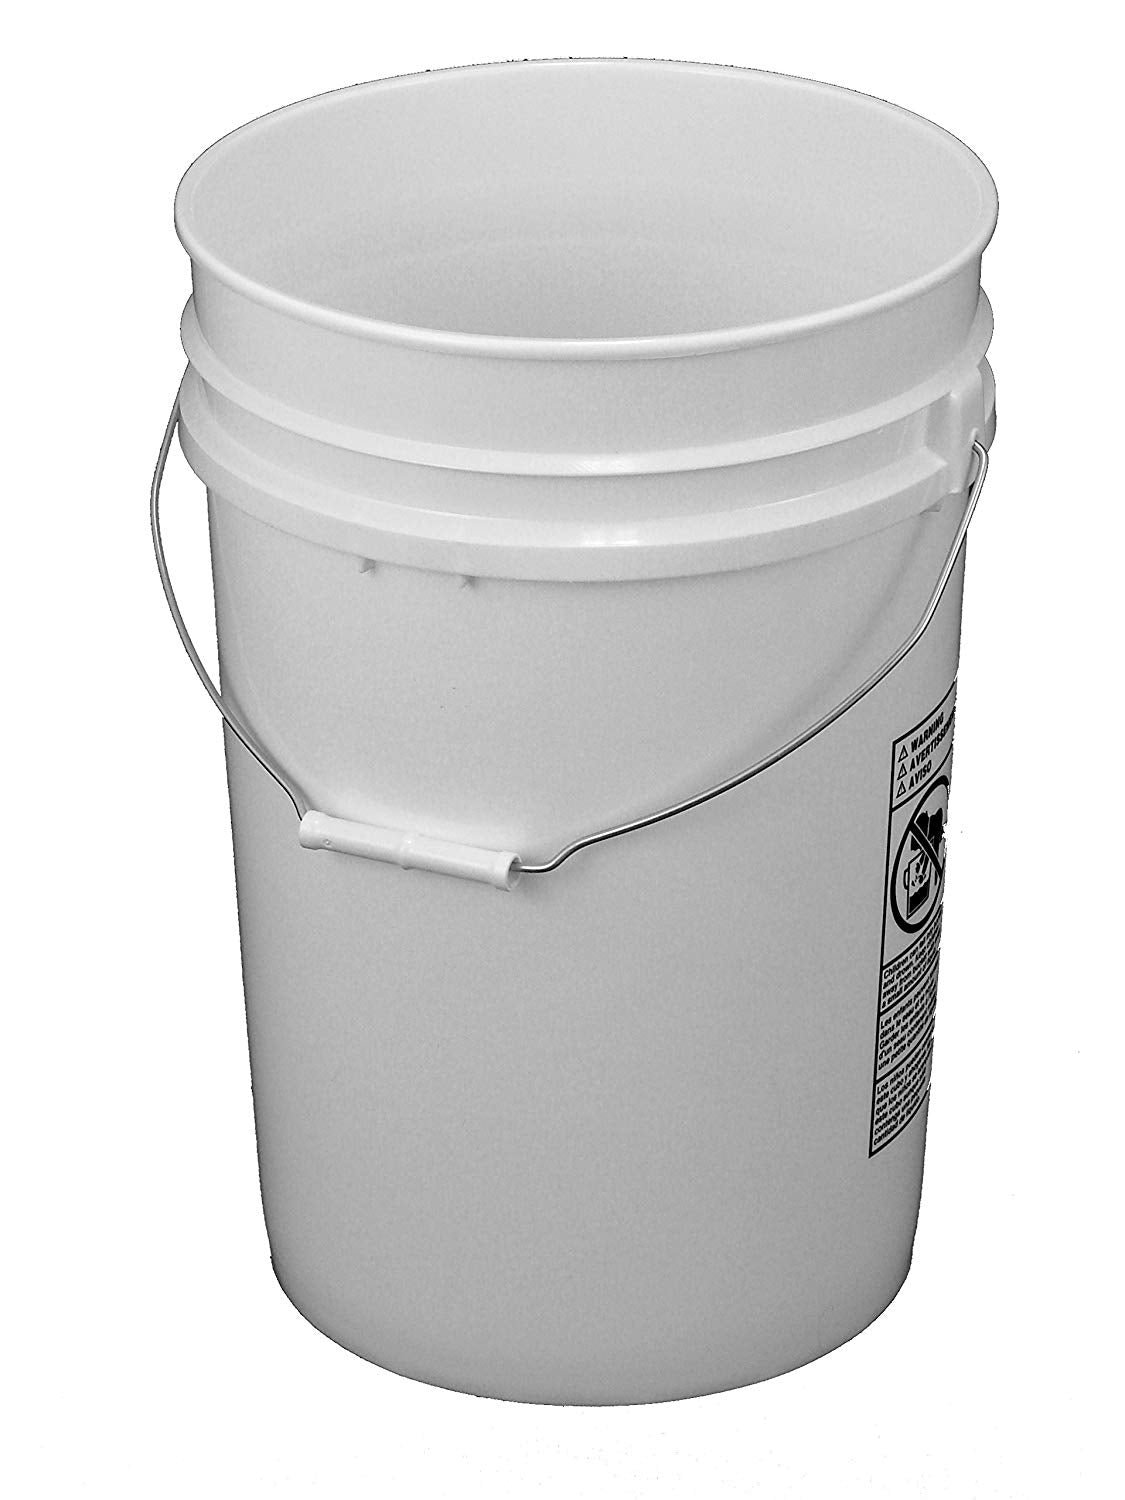 6 Gallon Food Grade Bucket with Lid